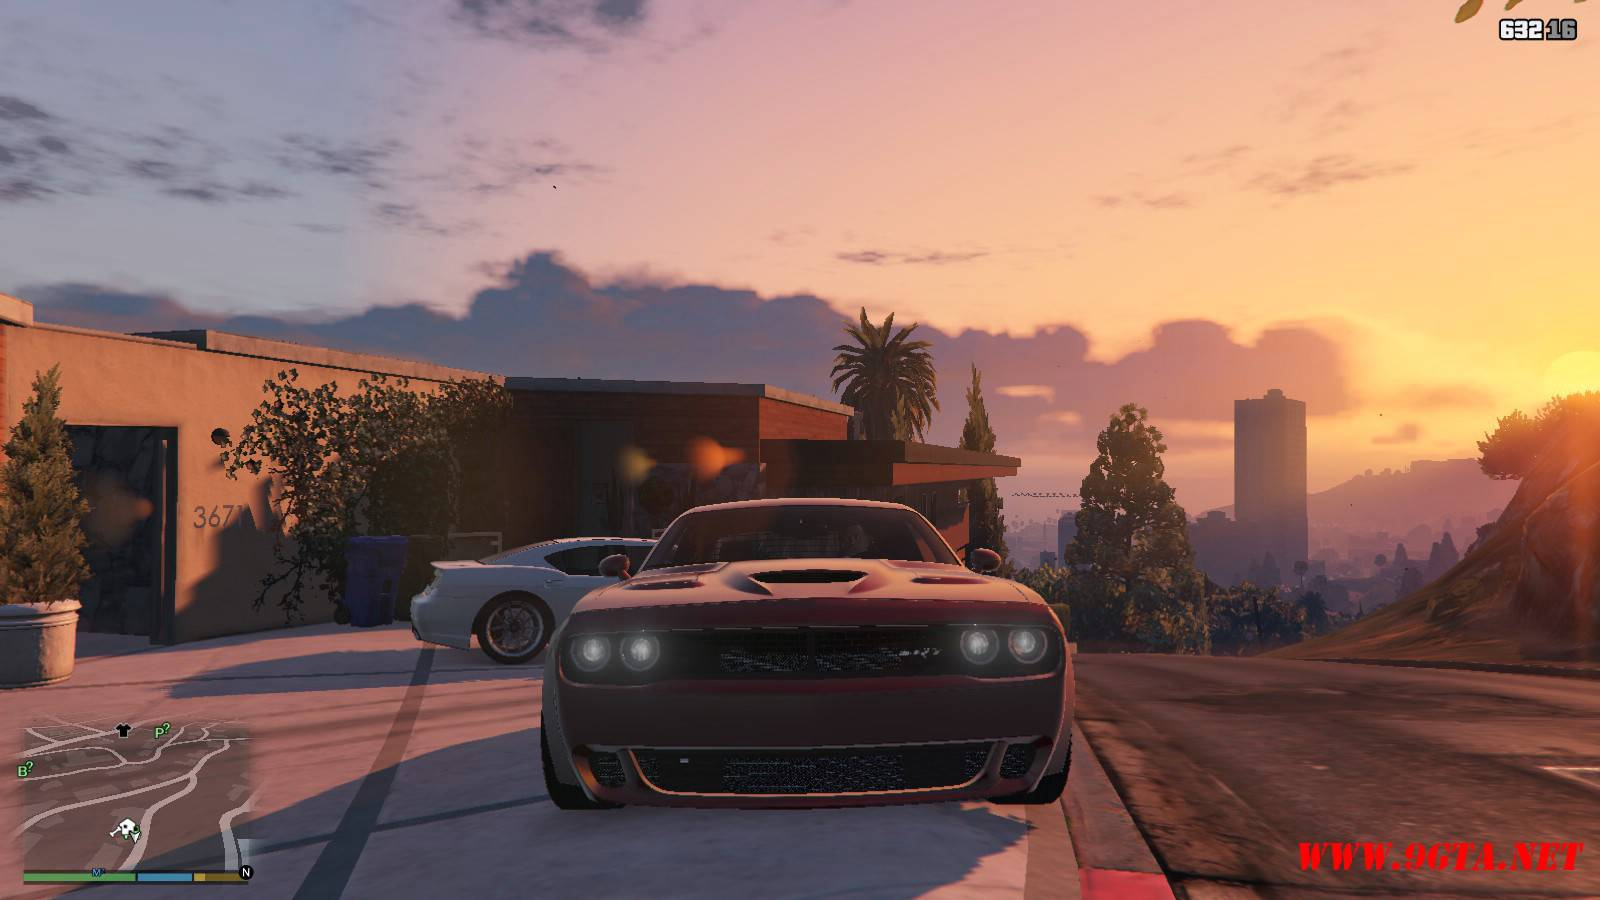 2018 Dodge Challenger SRT Demon v1.4 Mod For GTA5 (7)